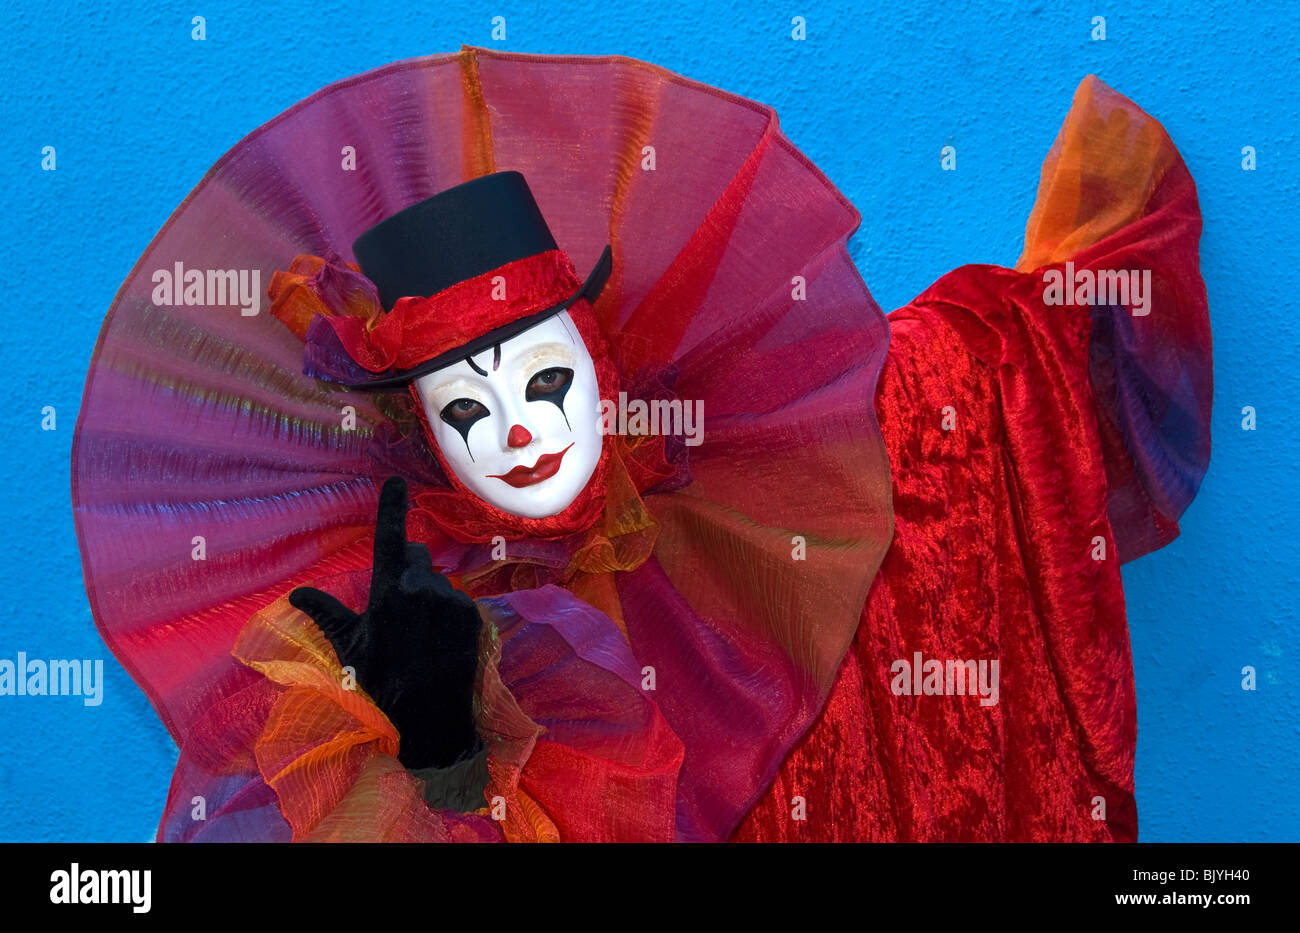 Venice, Italy, Carnival participant costumed as a clown - Stock Image